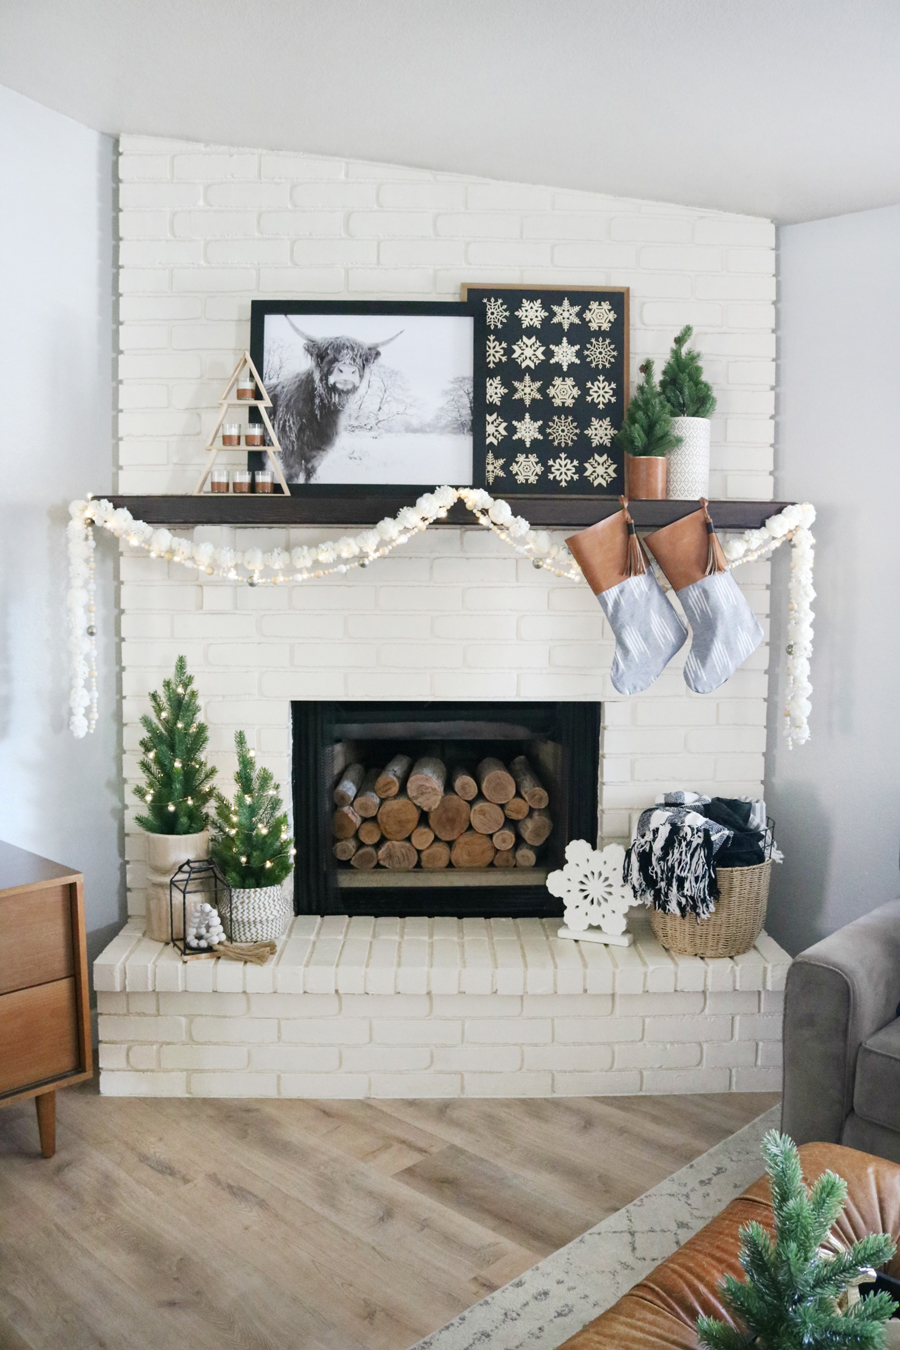 Black & White Boho Casual Christmas Mantel Decor